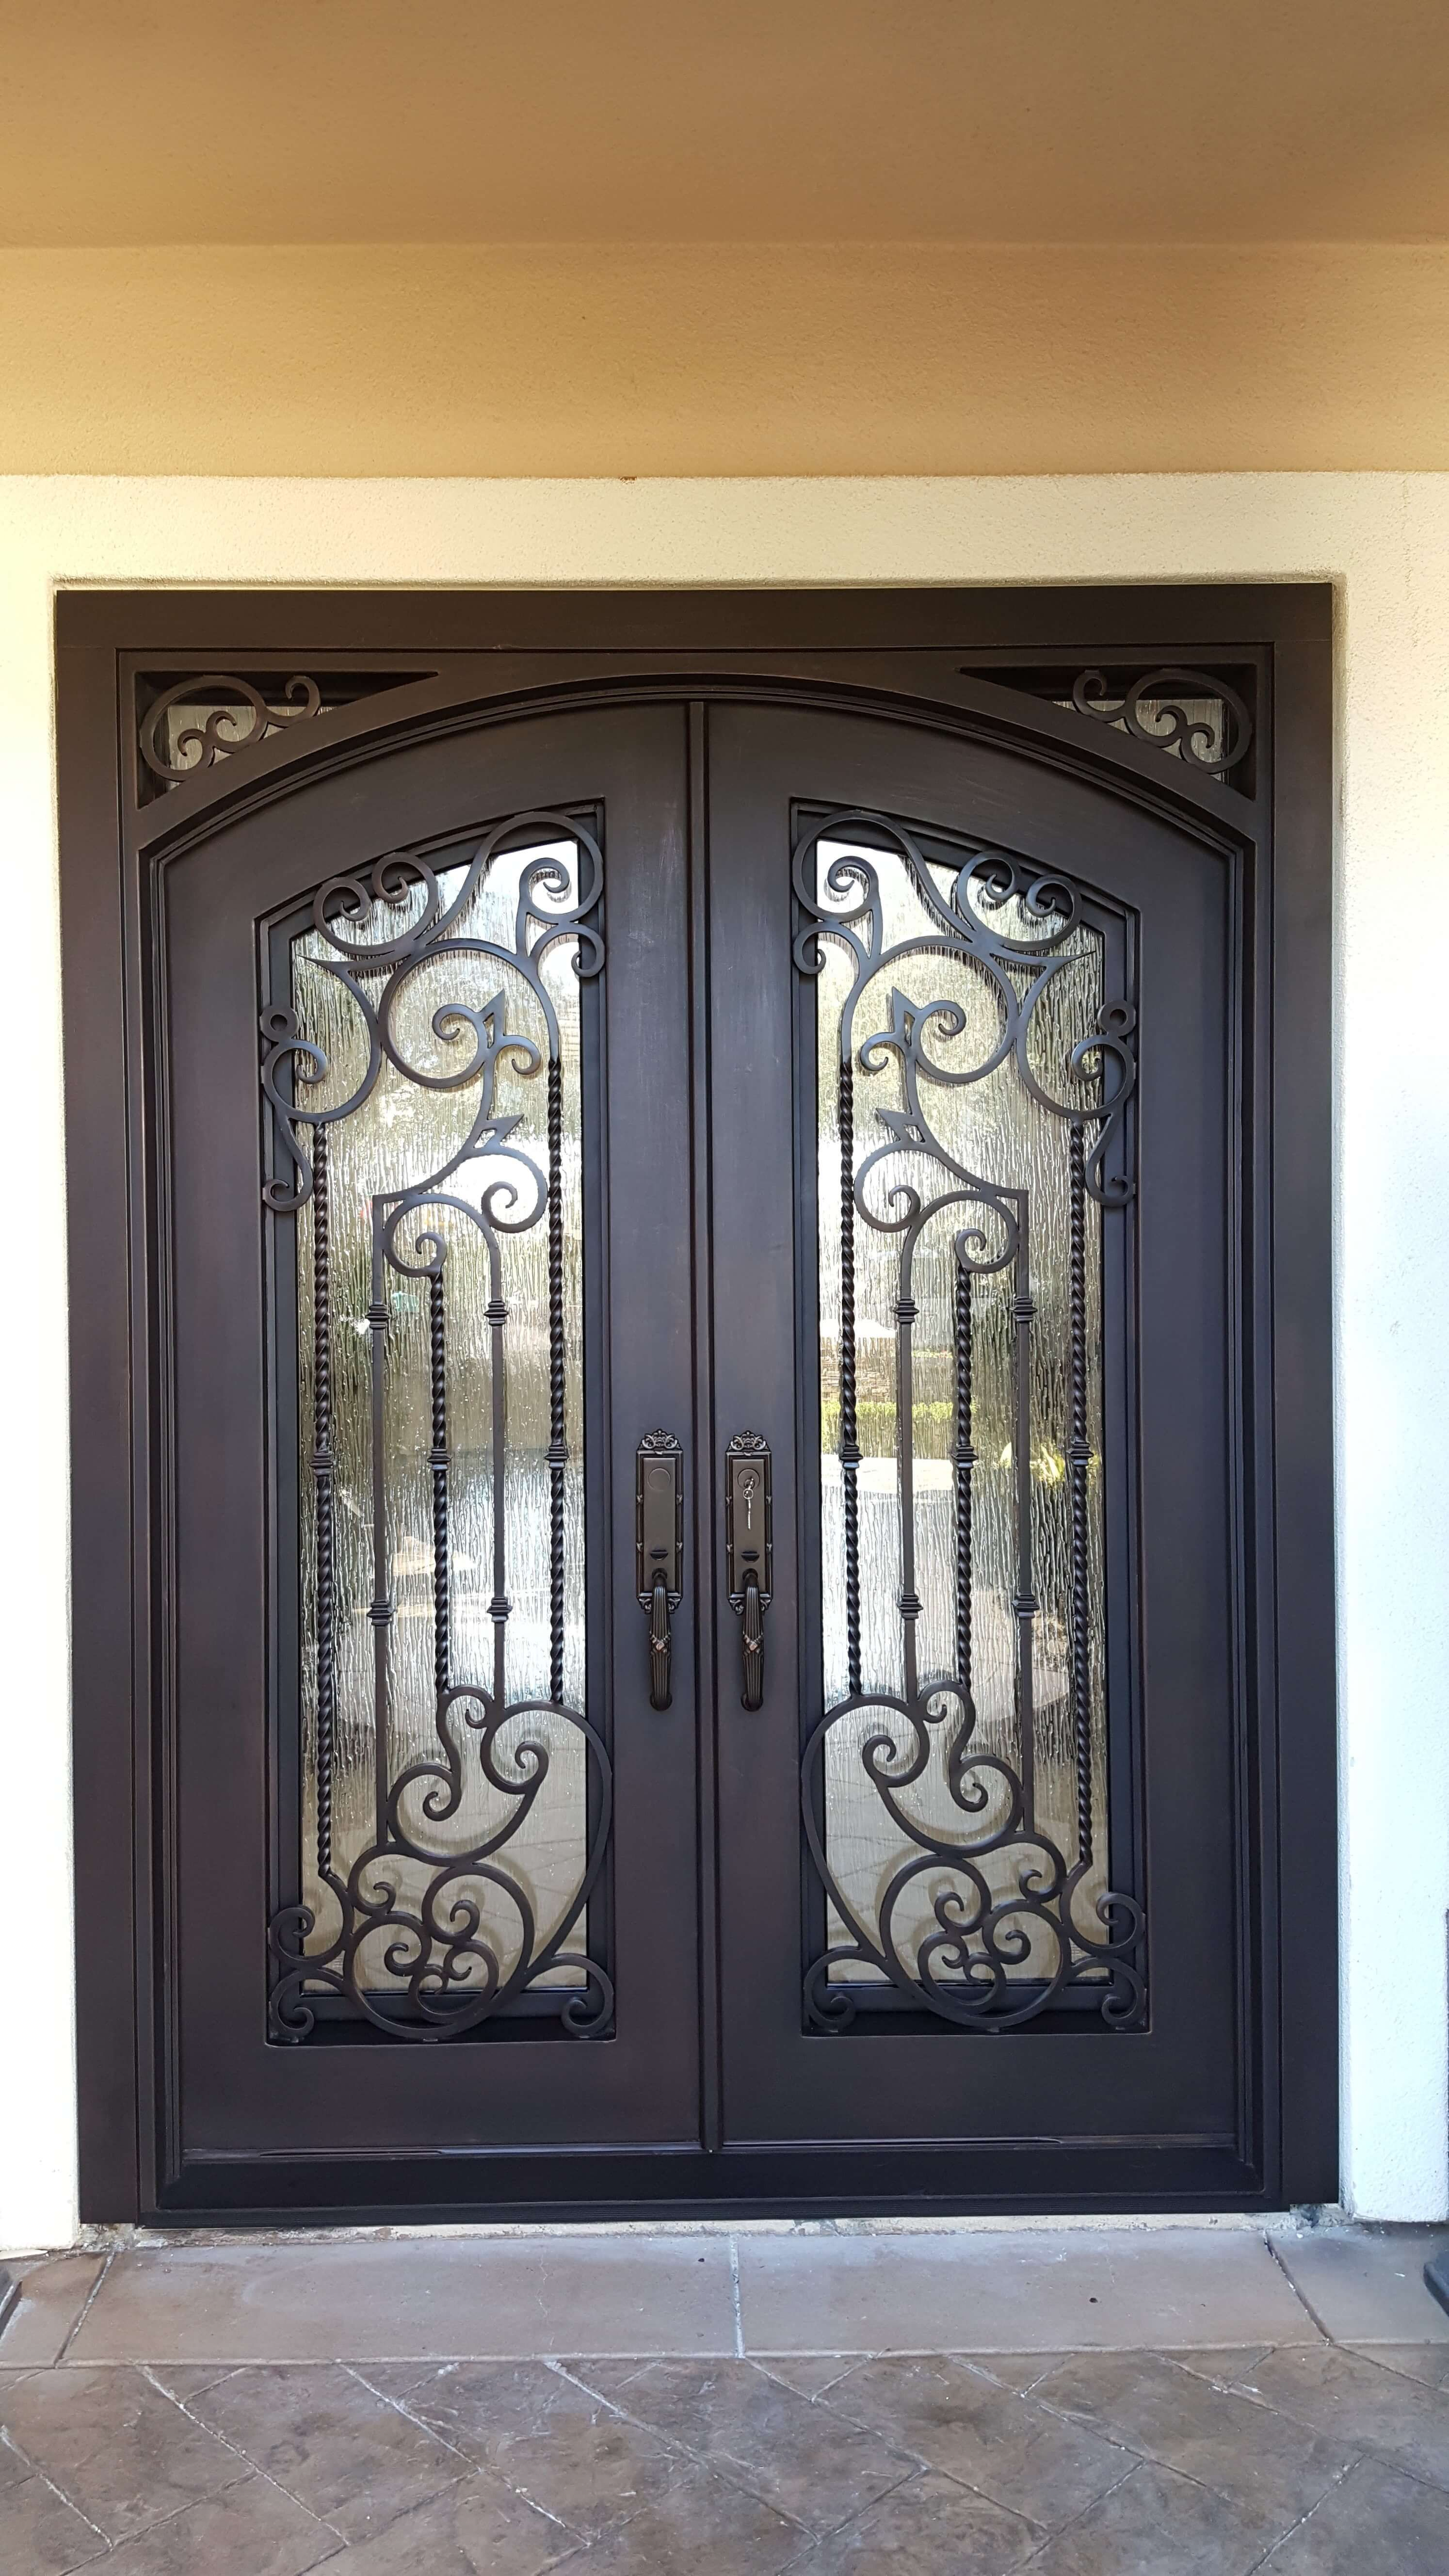 Tampa Wrought Iron Entry Door Wrought Iron Entry Doors Iron